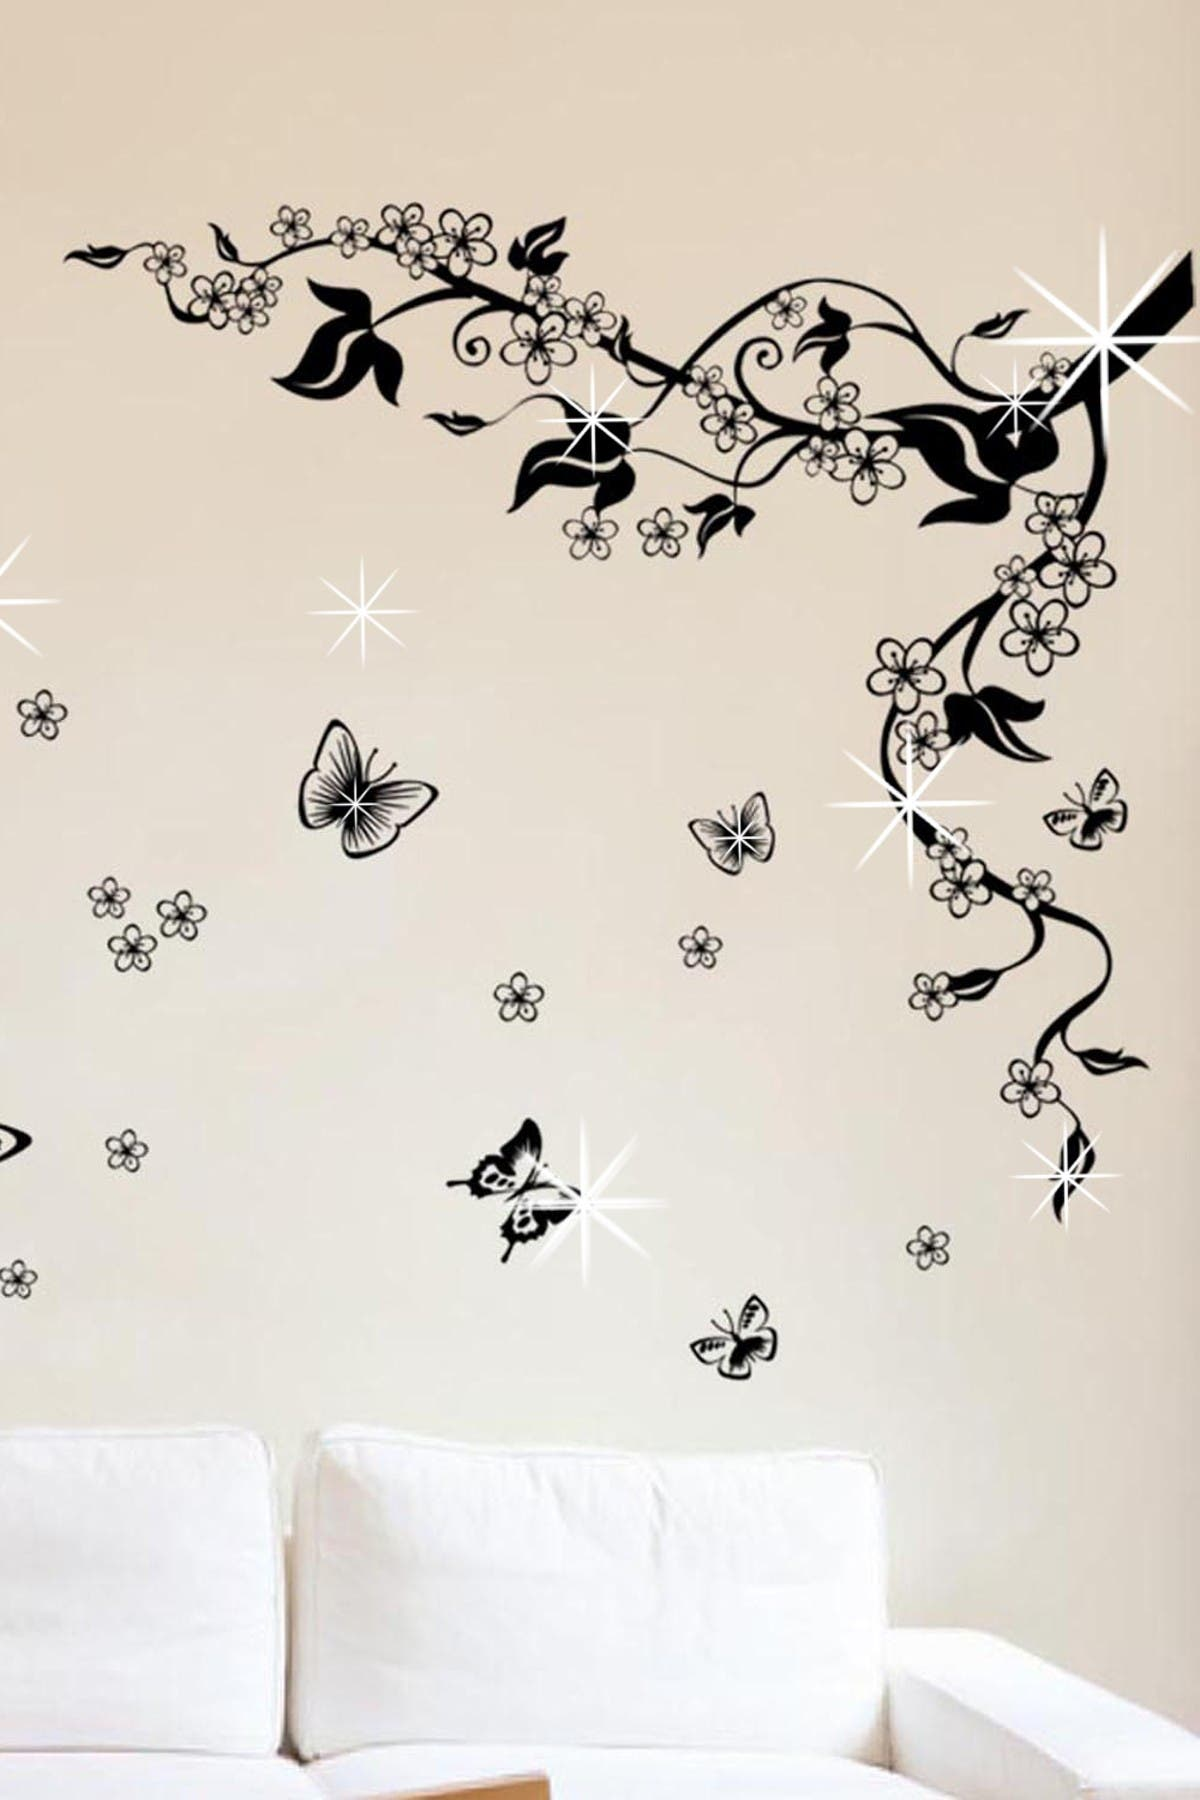 Image of WalPlus Swarovski Crystal Accent Butterfly Vine Decal